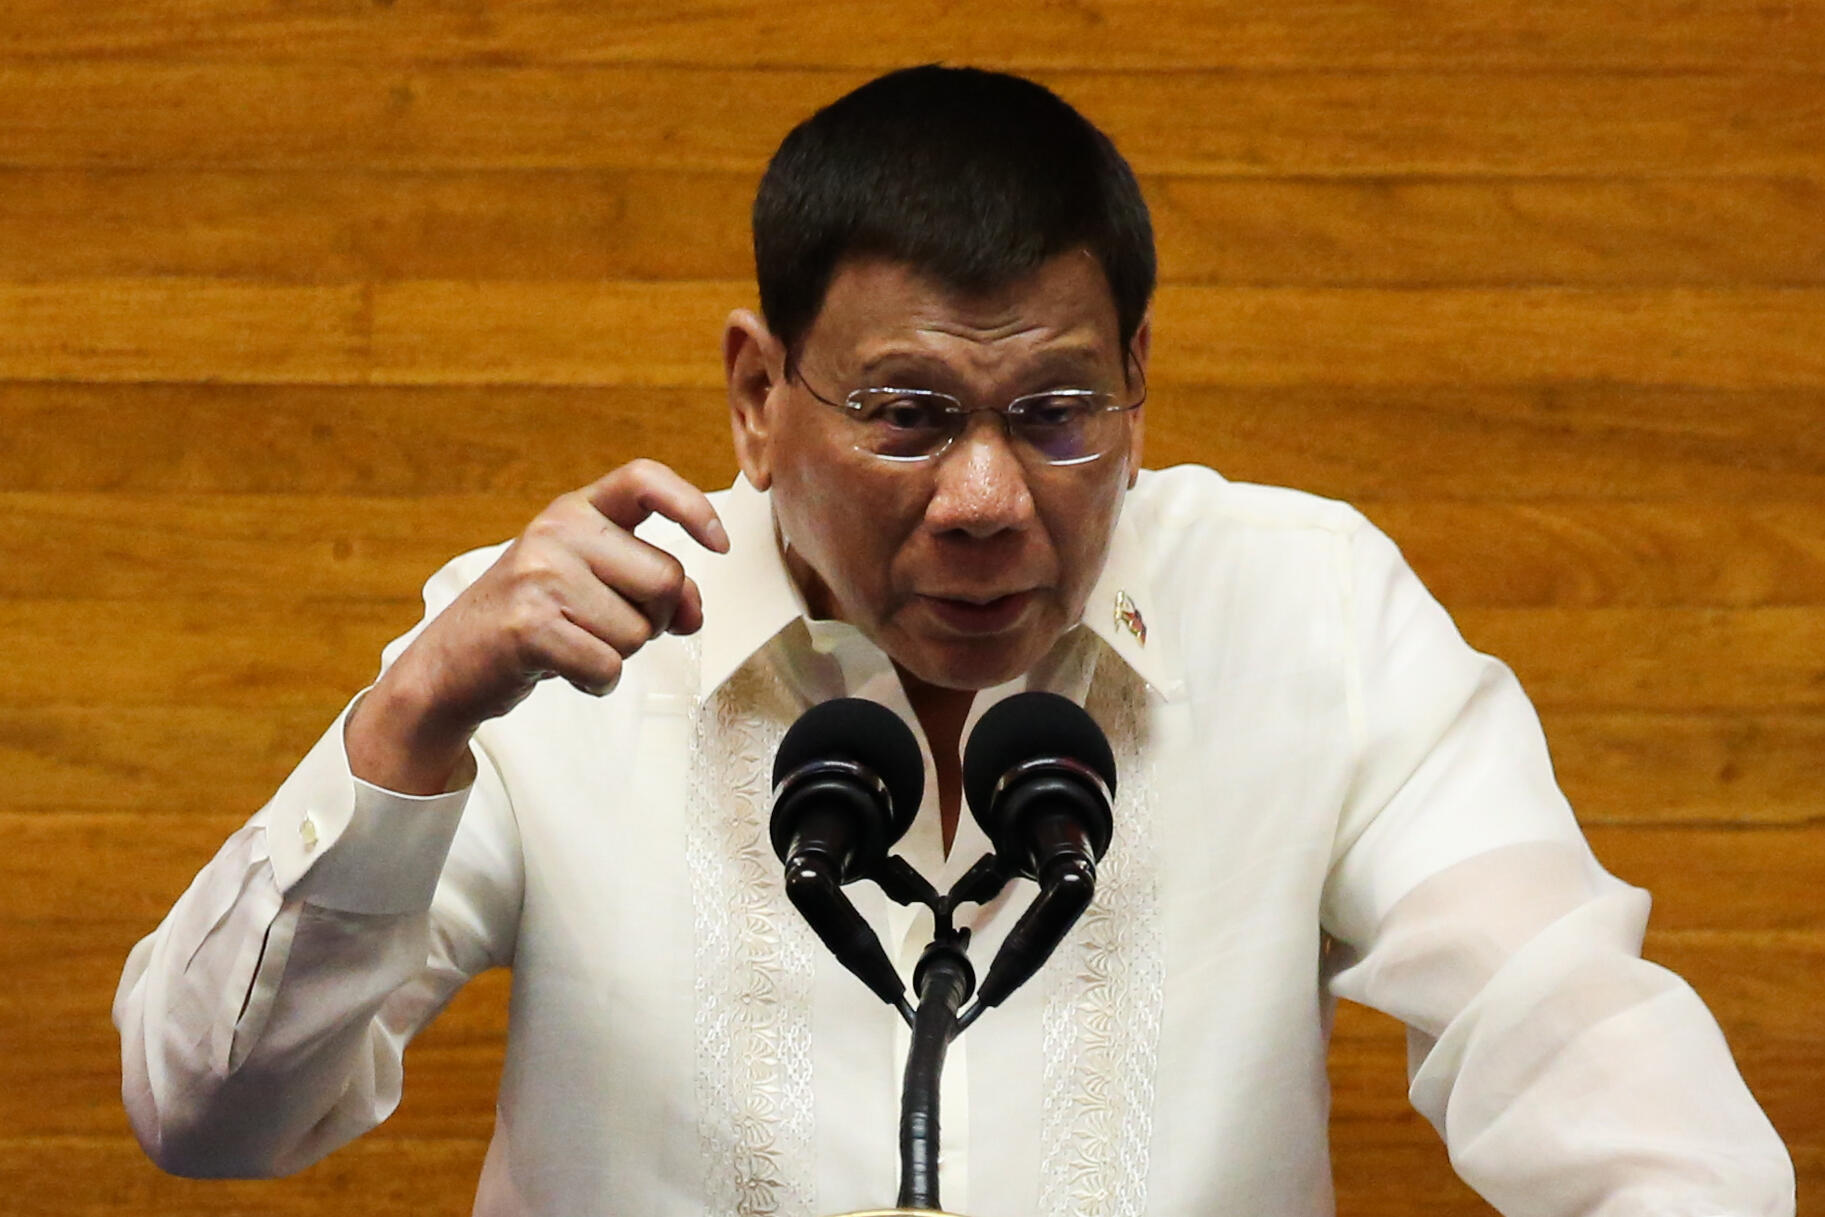 Rodrigo Duterte is barred under the constitution from seeking another term as president